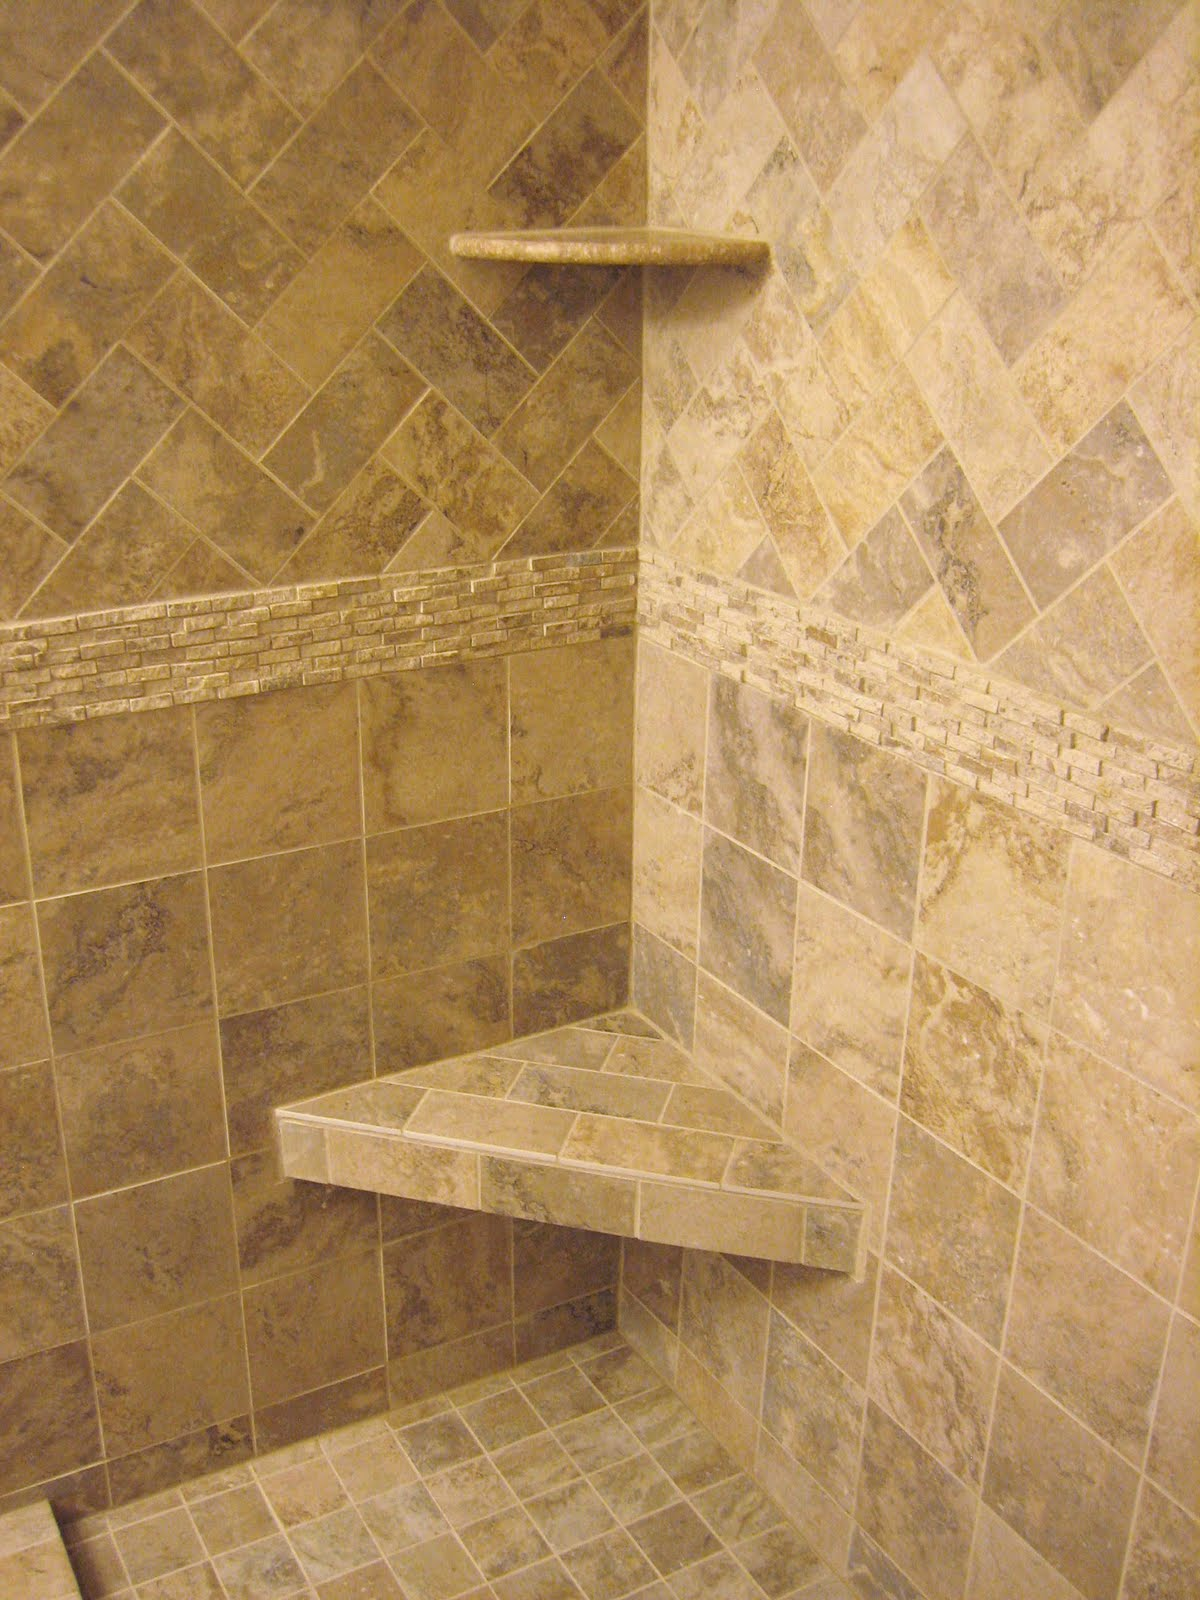 H winter showroom blog luxury master bath remodel athena for Small bathroom tiles